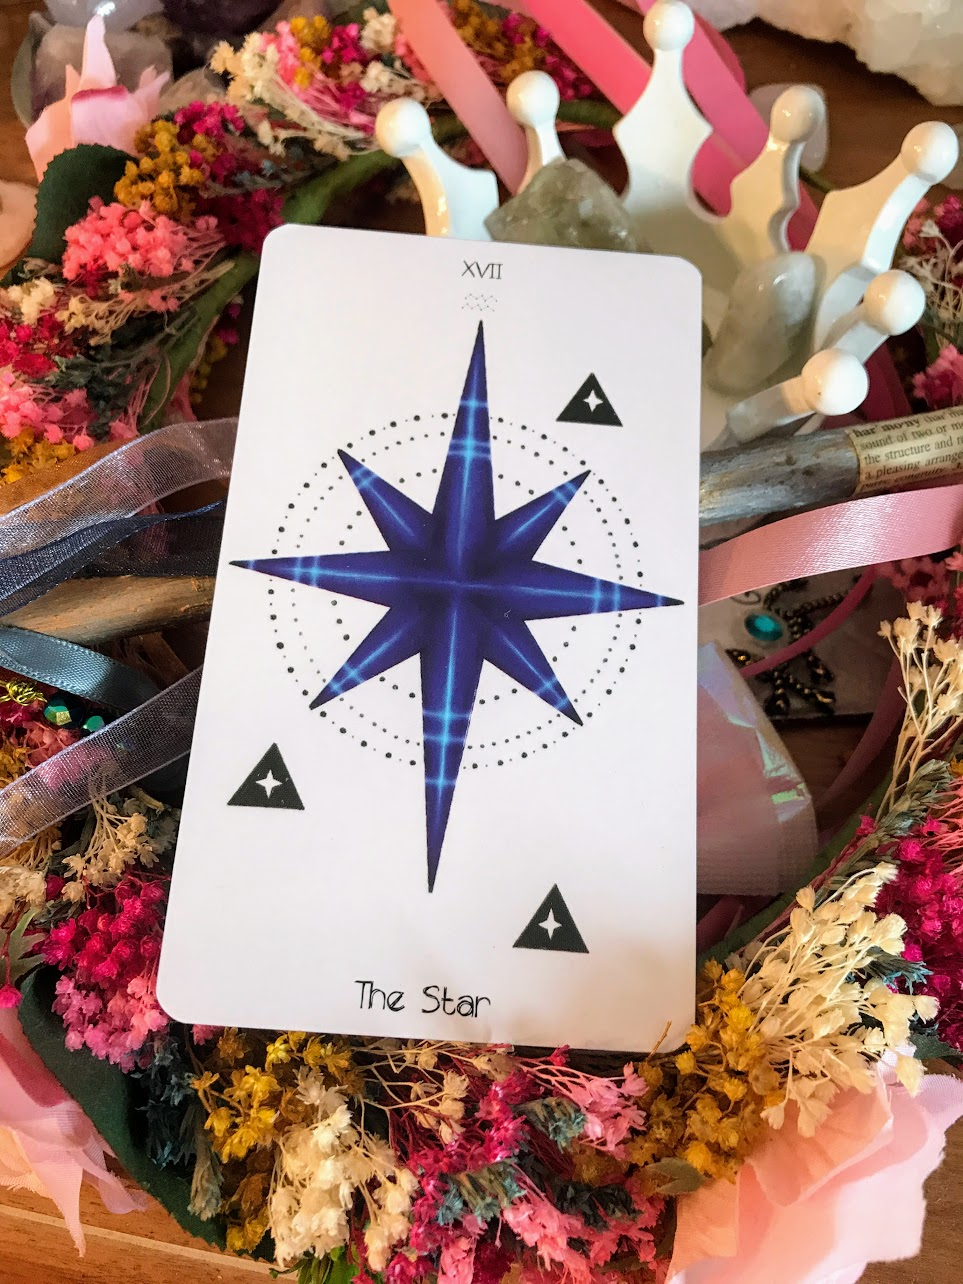 Cancer - The Star - Naked Heart Tarot.jpg